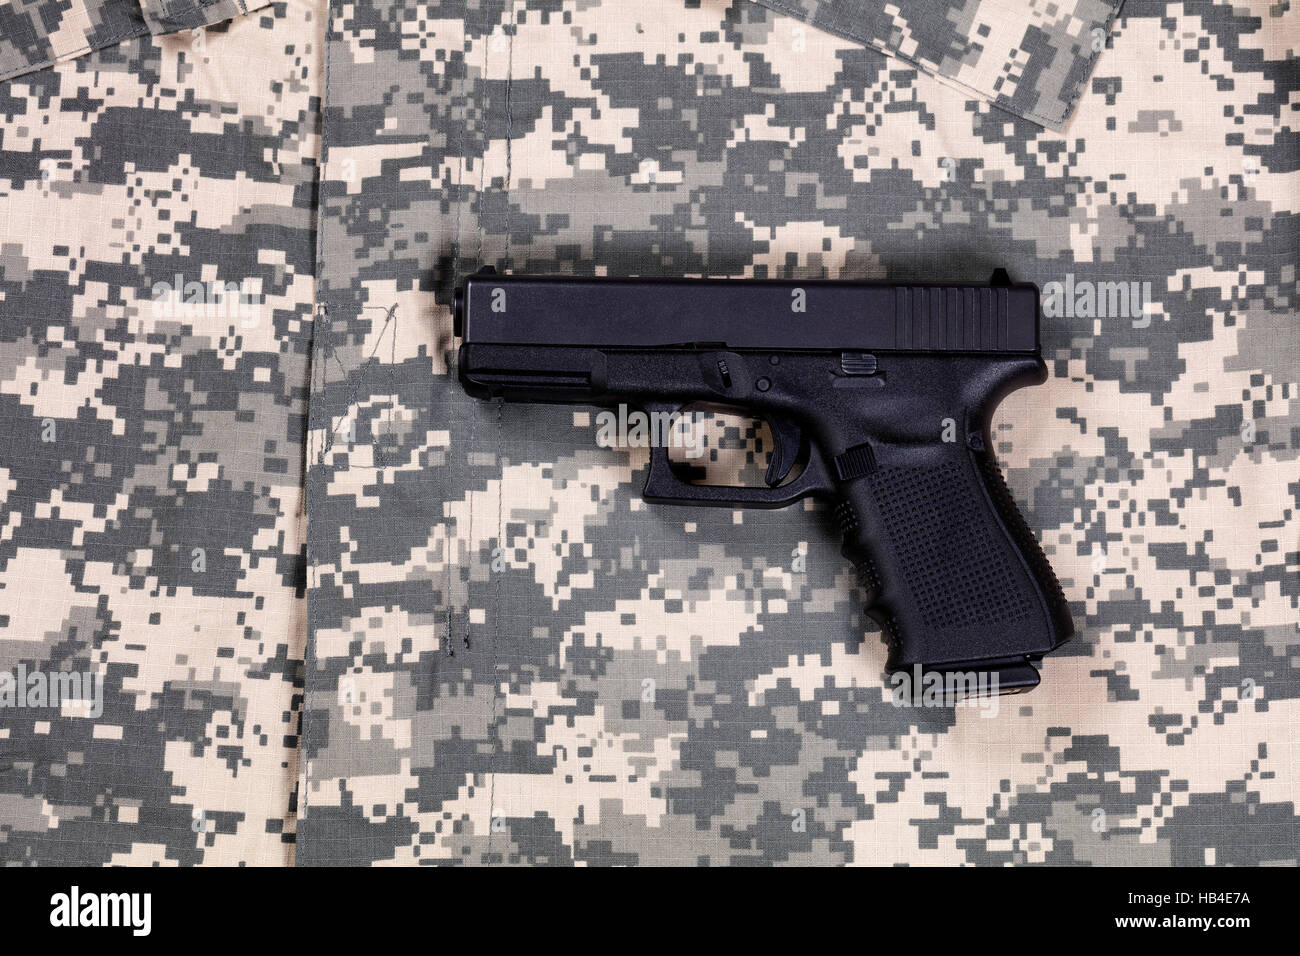 Camouflage battle dress uniform with weapon - Stock Image